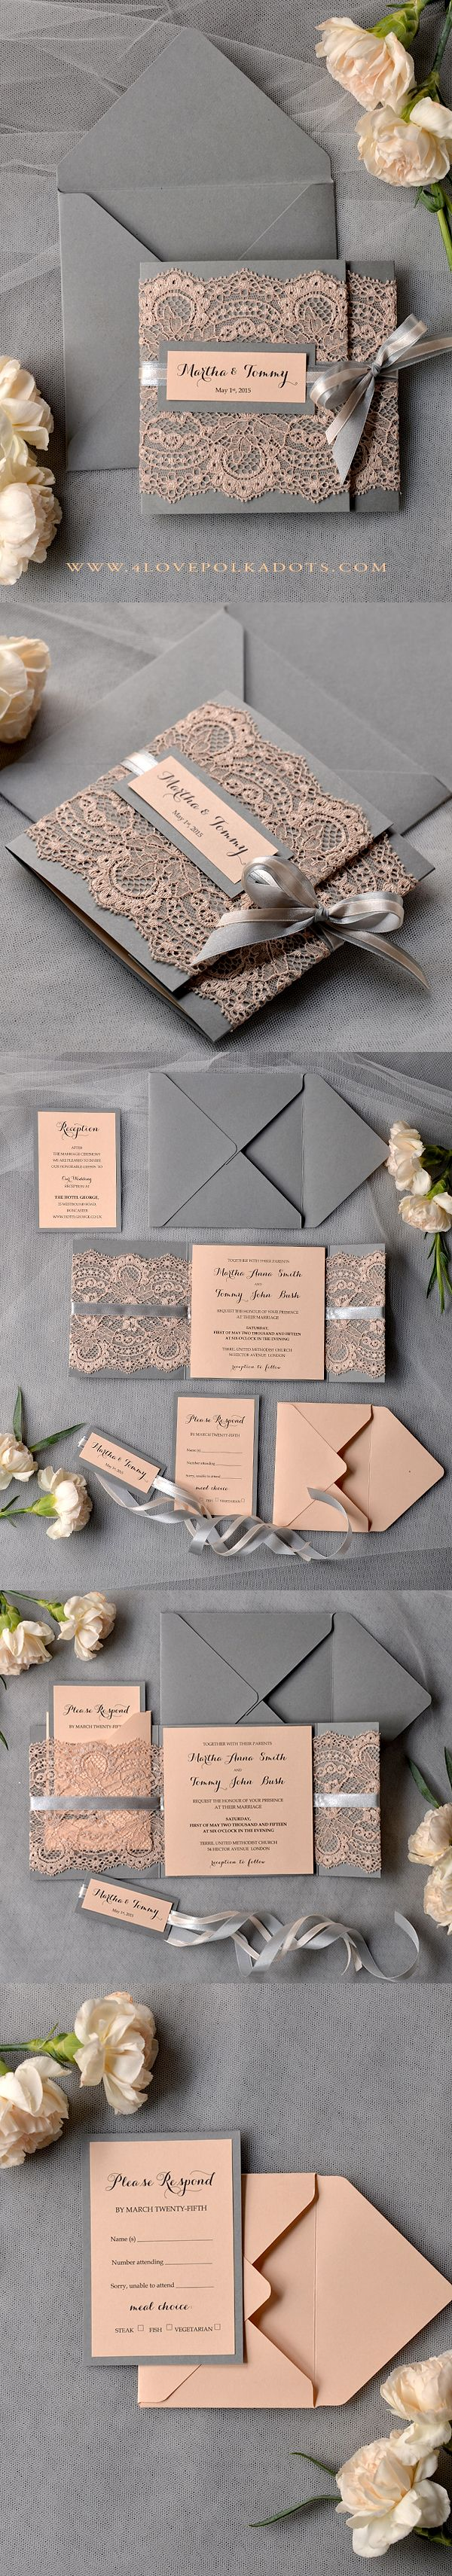 second wedding invitations wording%0A Peach  u     Grey Lace Wedding Invitations  perfectwedding  weddingideas  lace u